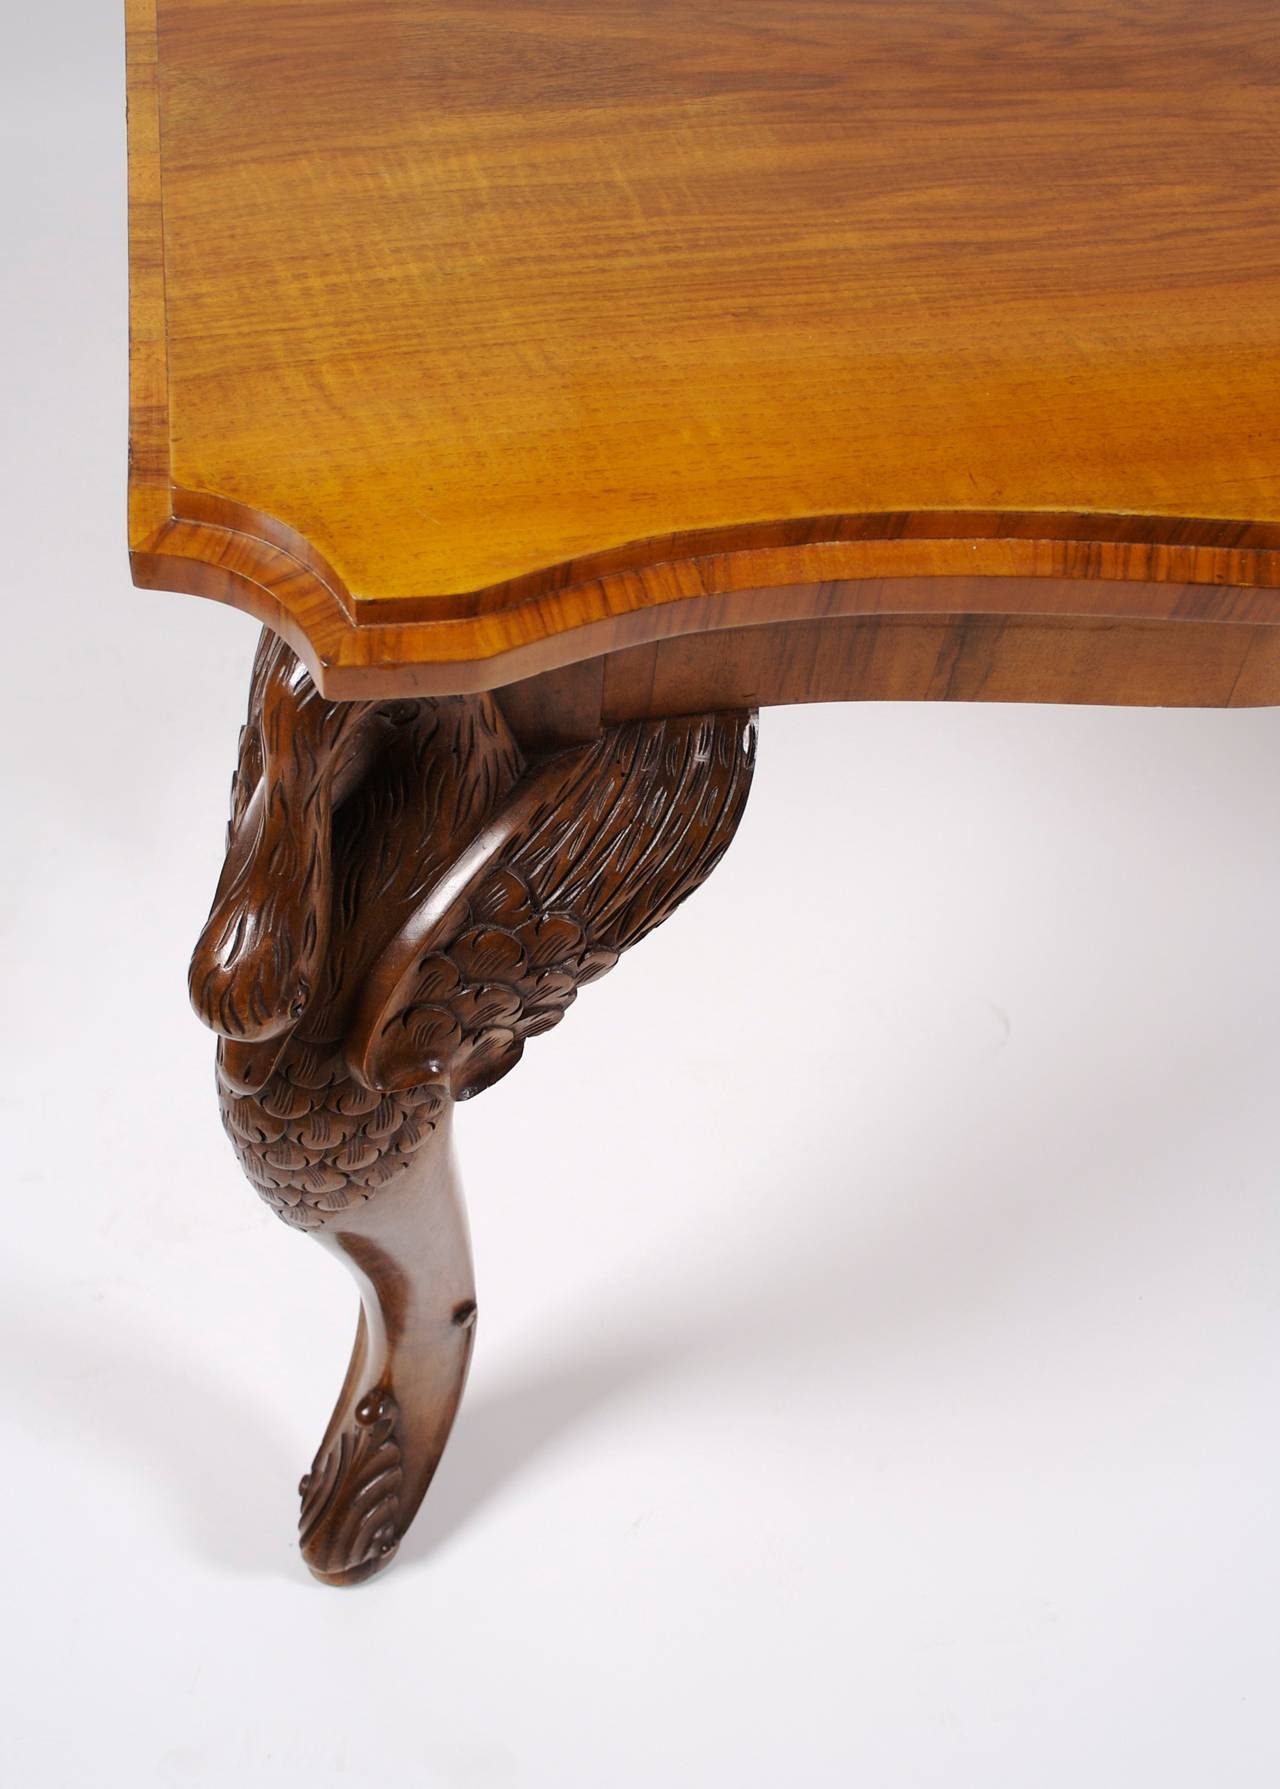 French Art Deco Period Carved Mahogany Quot Swan Leg Quot Table